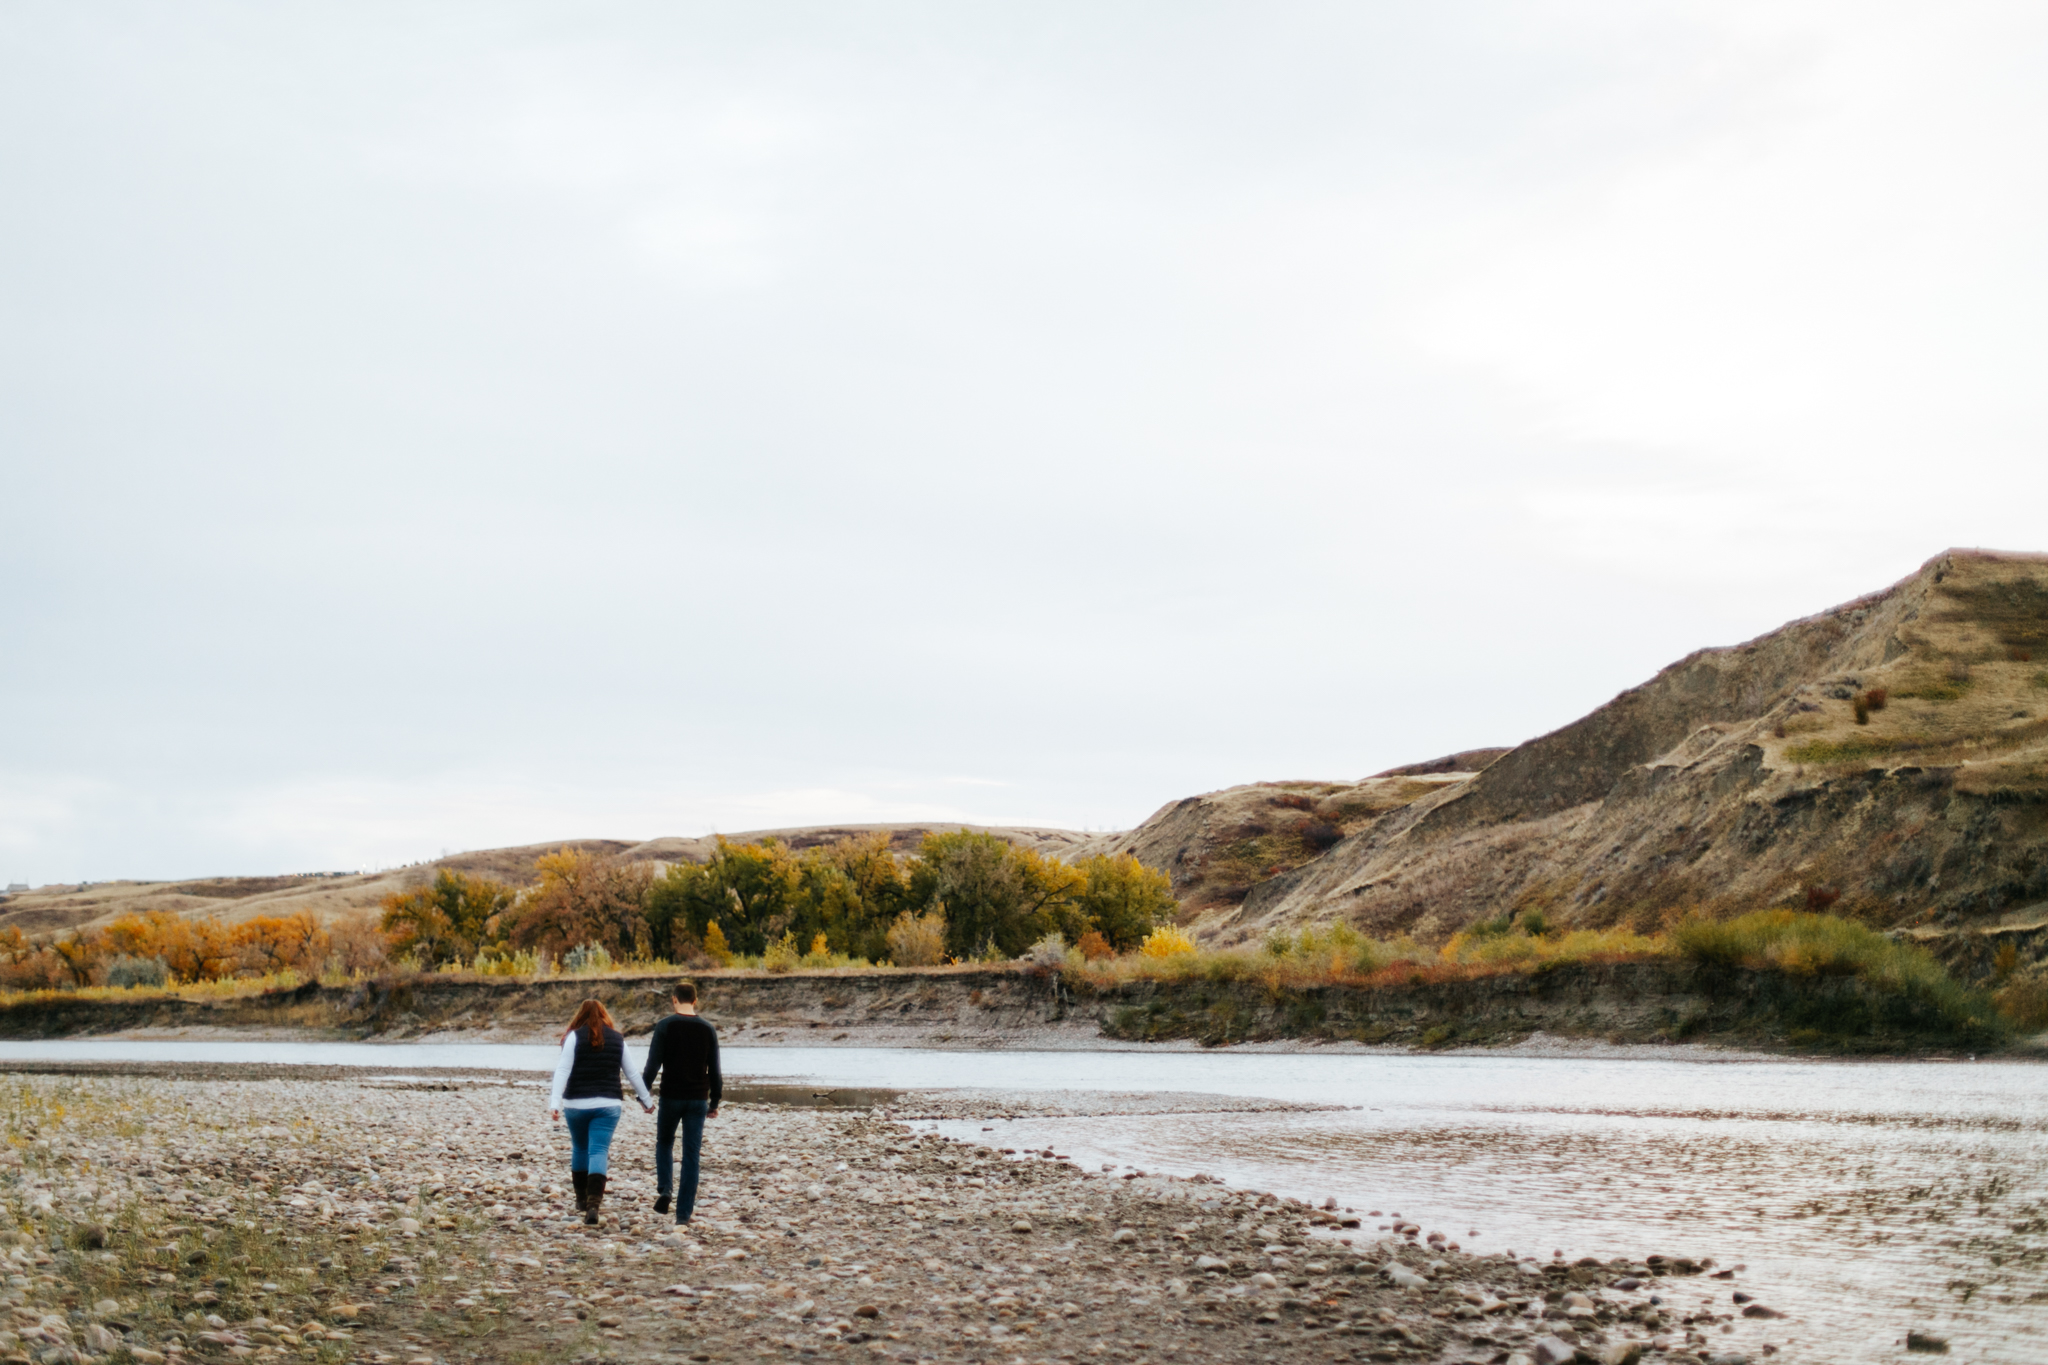 lethbridge-photographer-love-and-be-loved-photography-indian-battle-park-engagement-mike-carmel-photo-image-picture-45.jpg